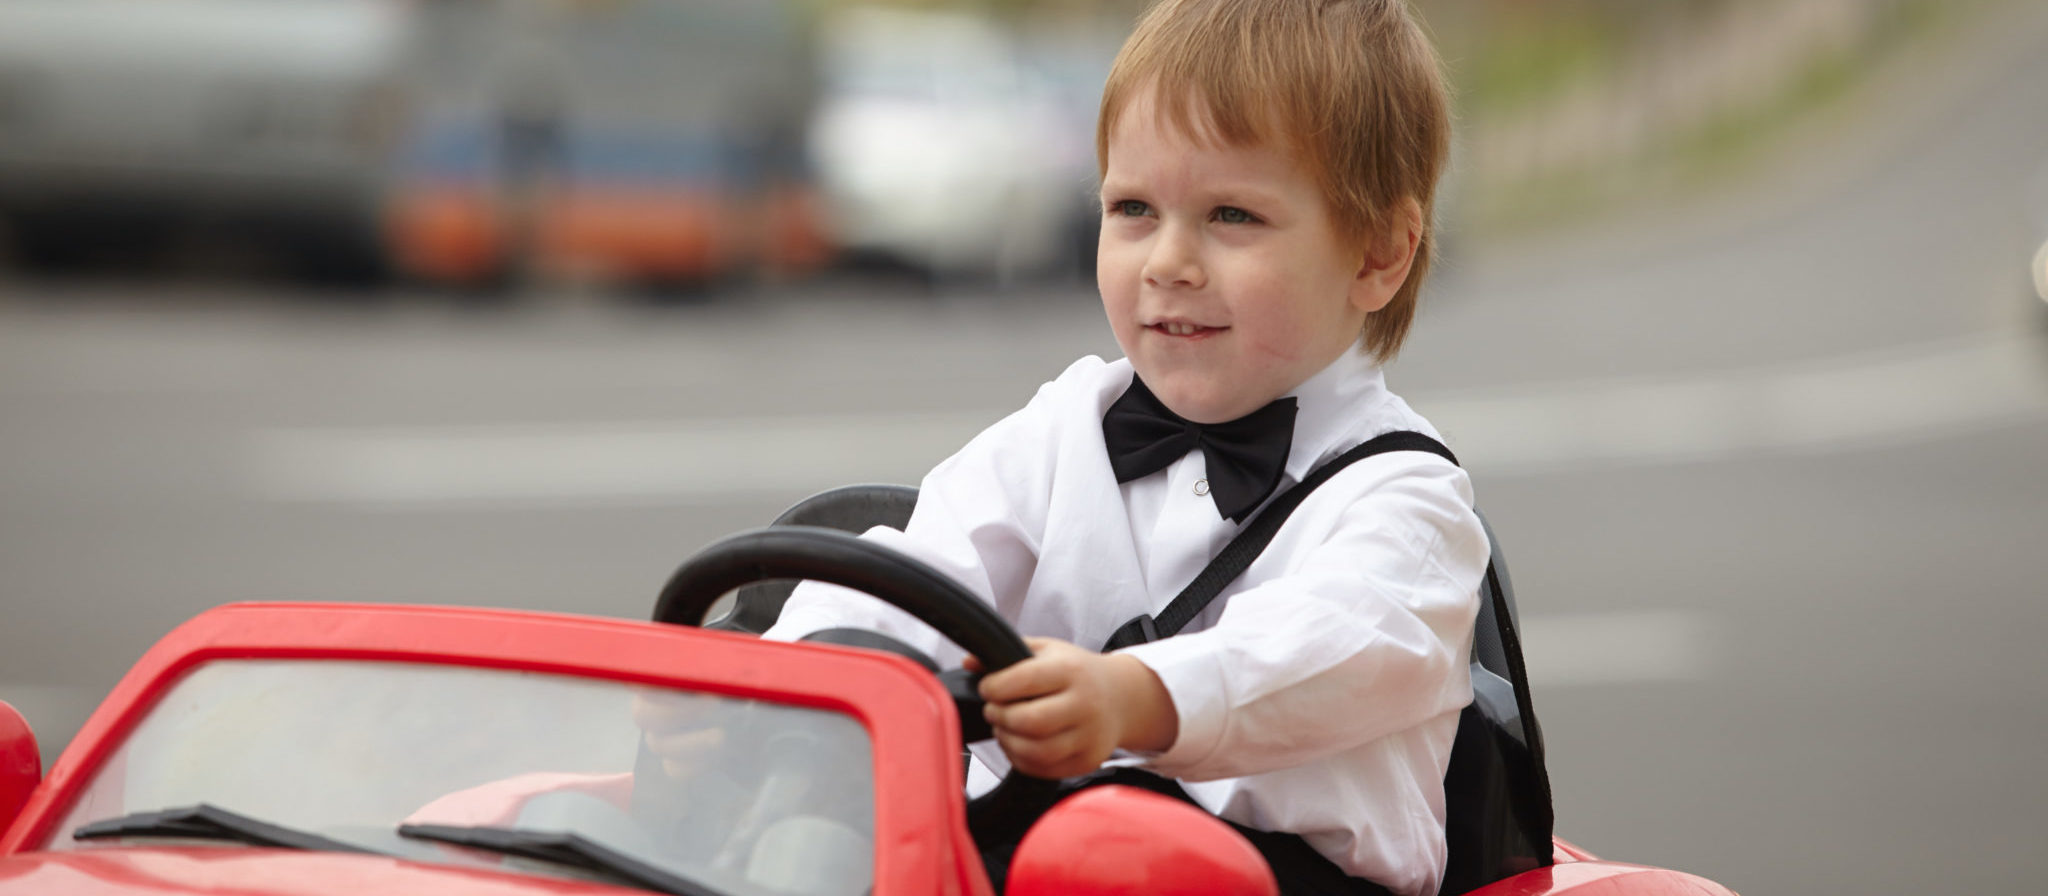 Toy cars for kids to drive are great for childhood development and plenty of outdoor fun.